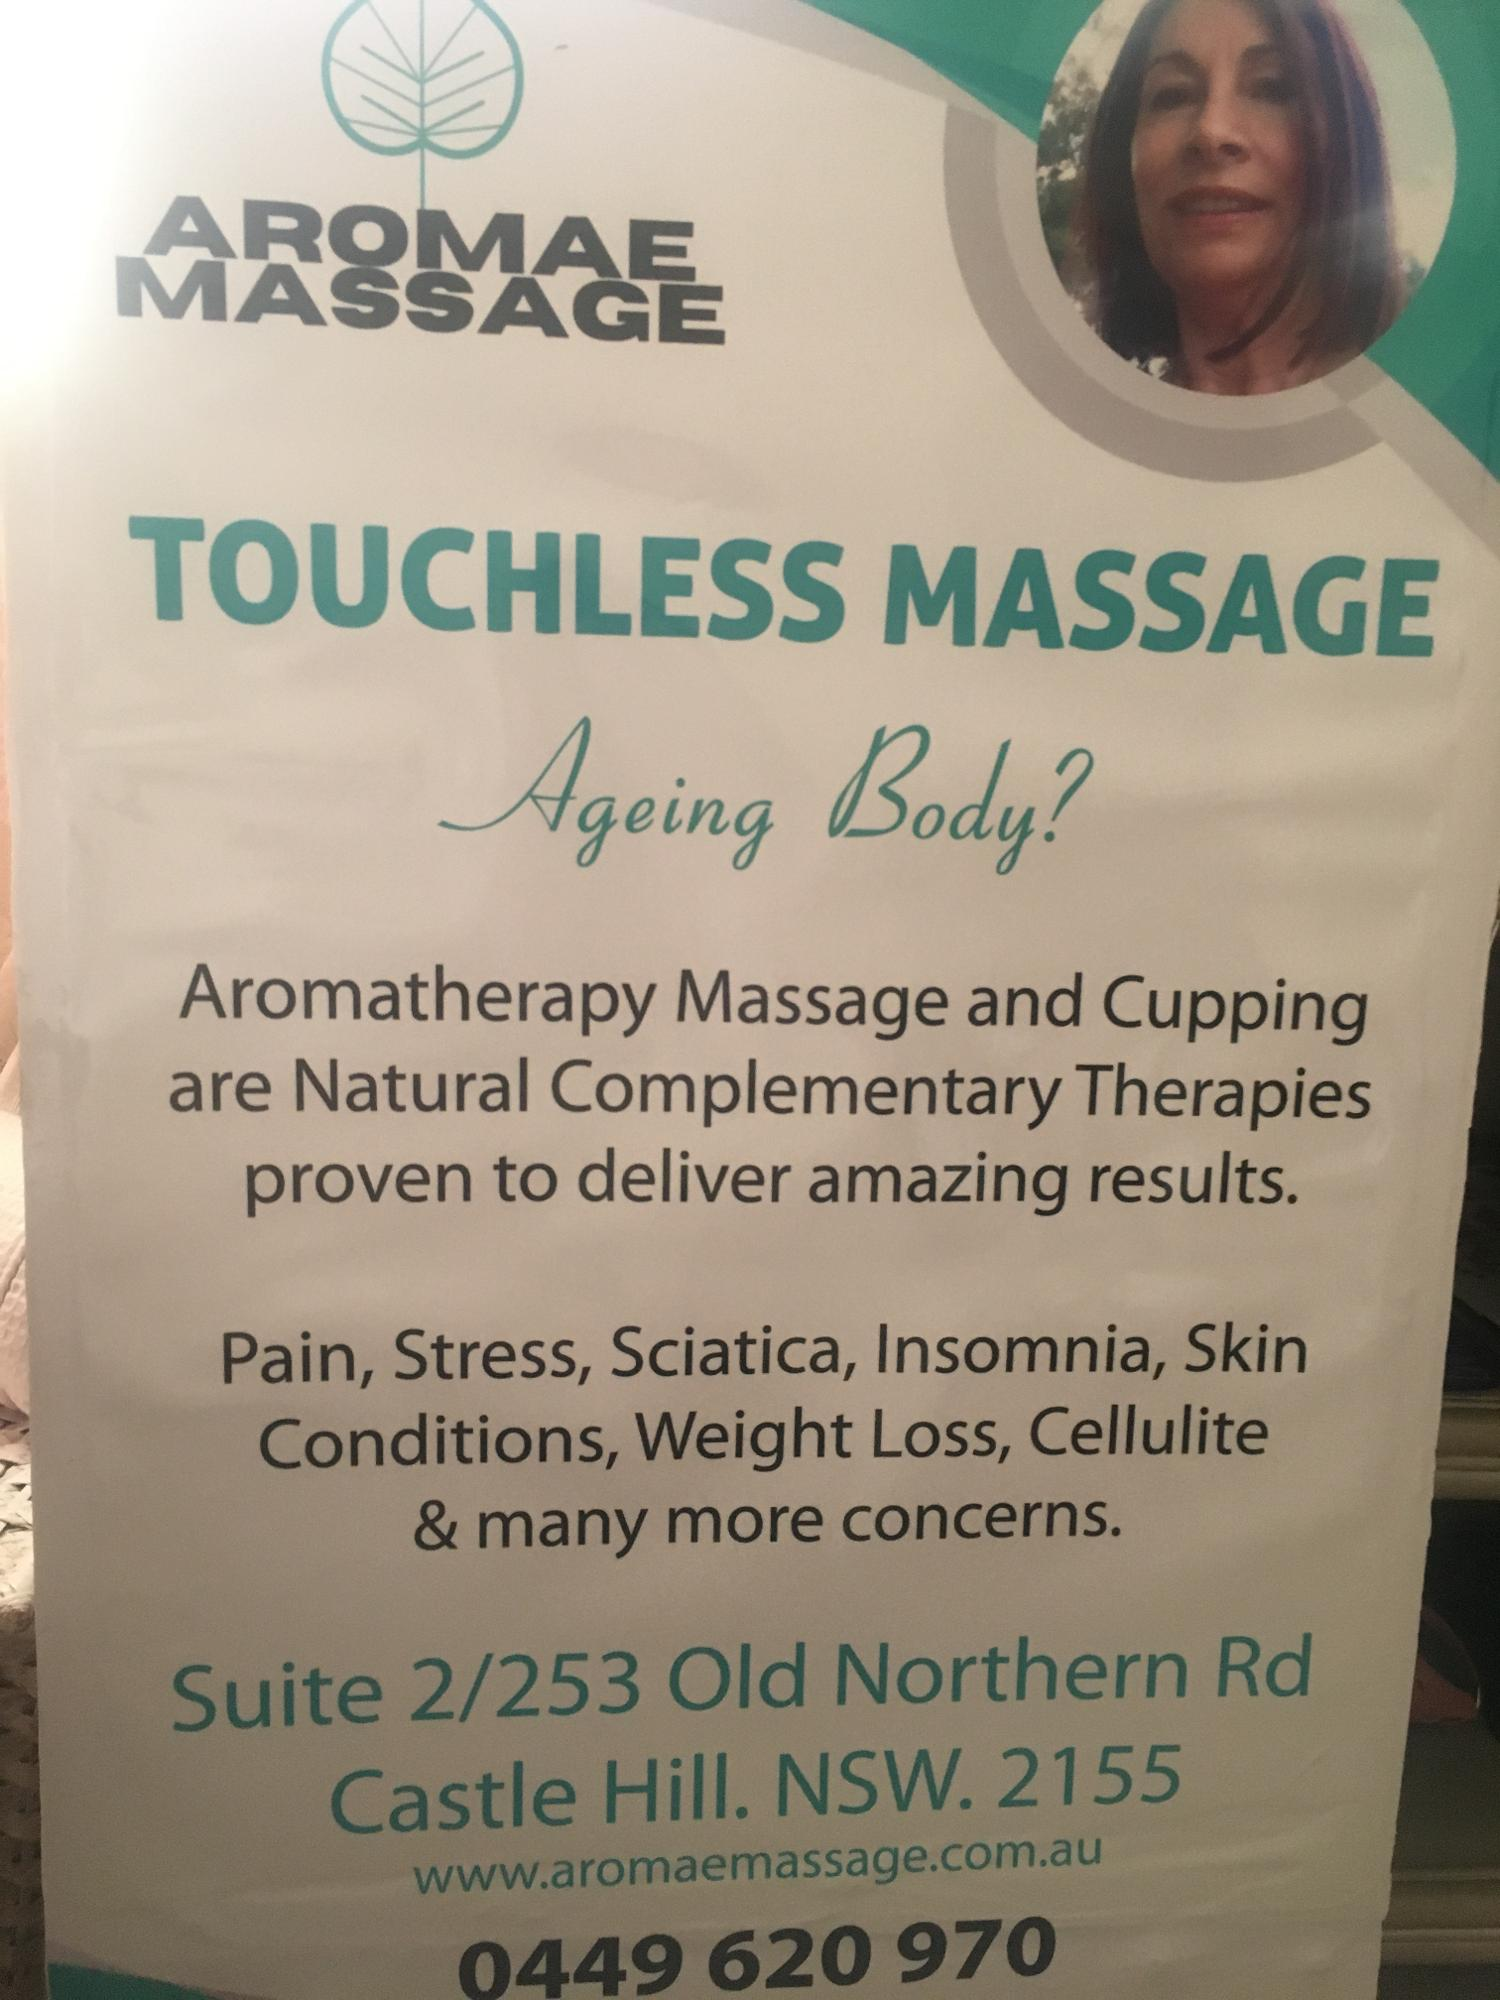 Aromae Massage & Cupping Services